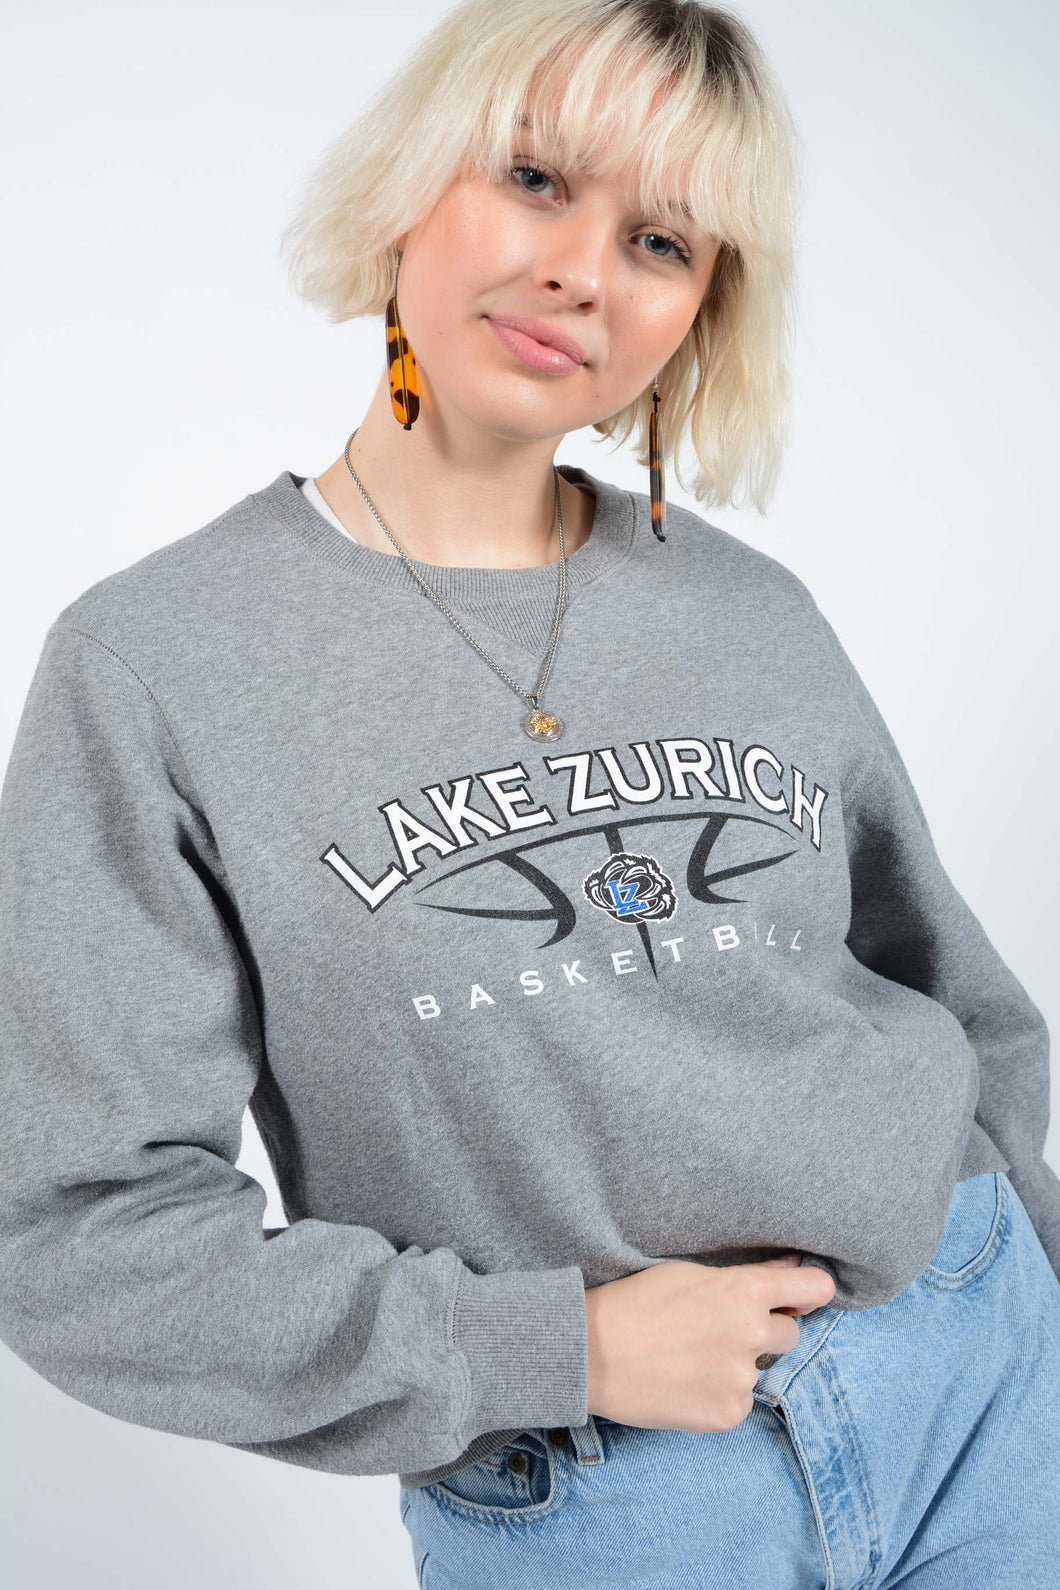 Vintage Sweatshirt in Grey with Basketball Print - M